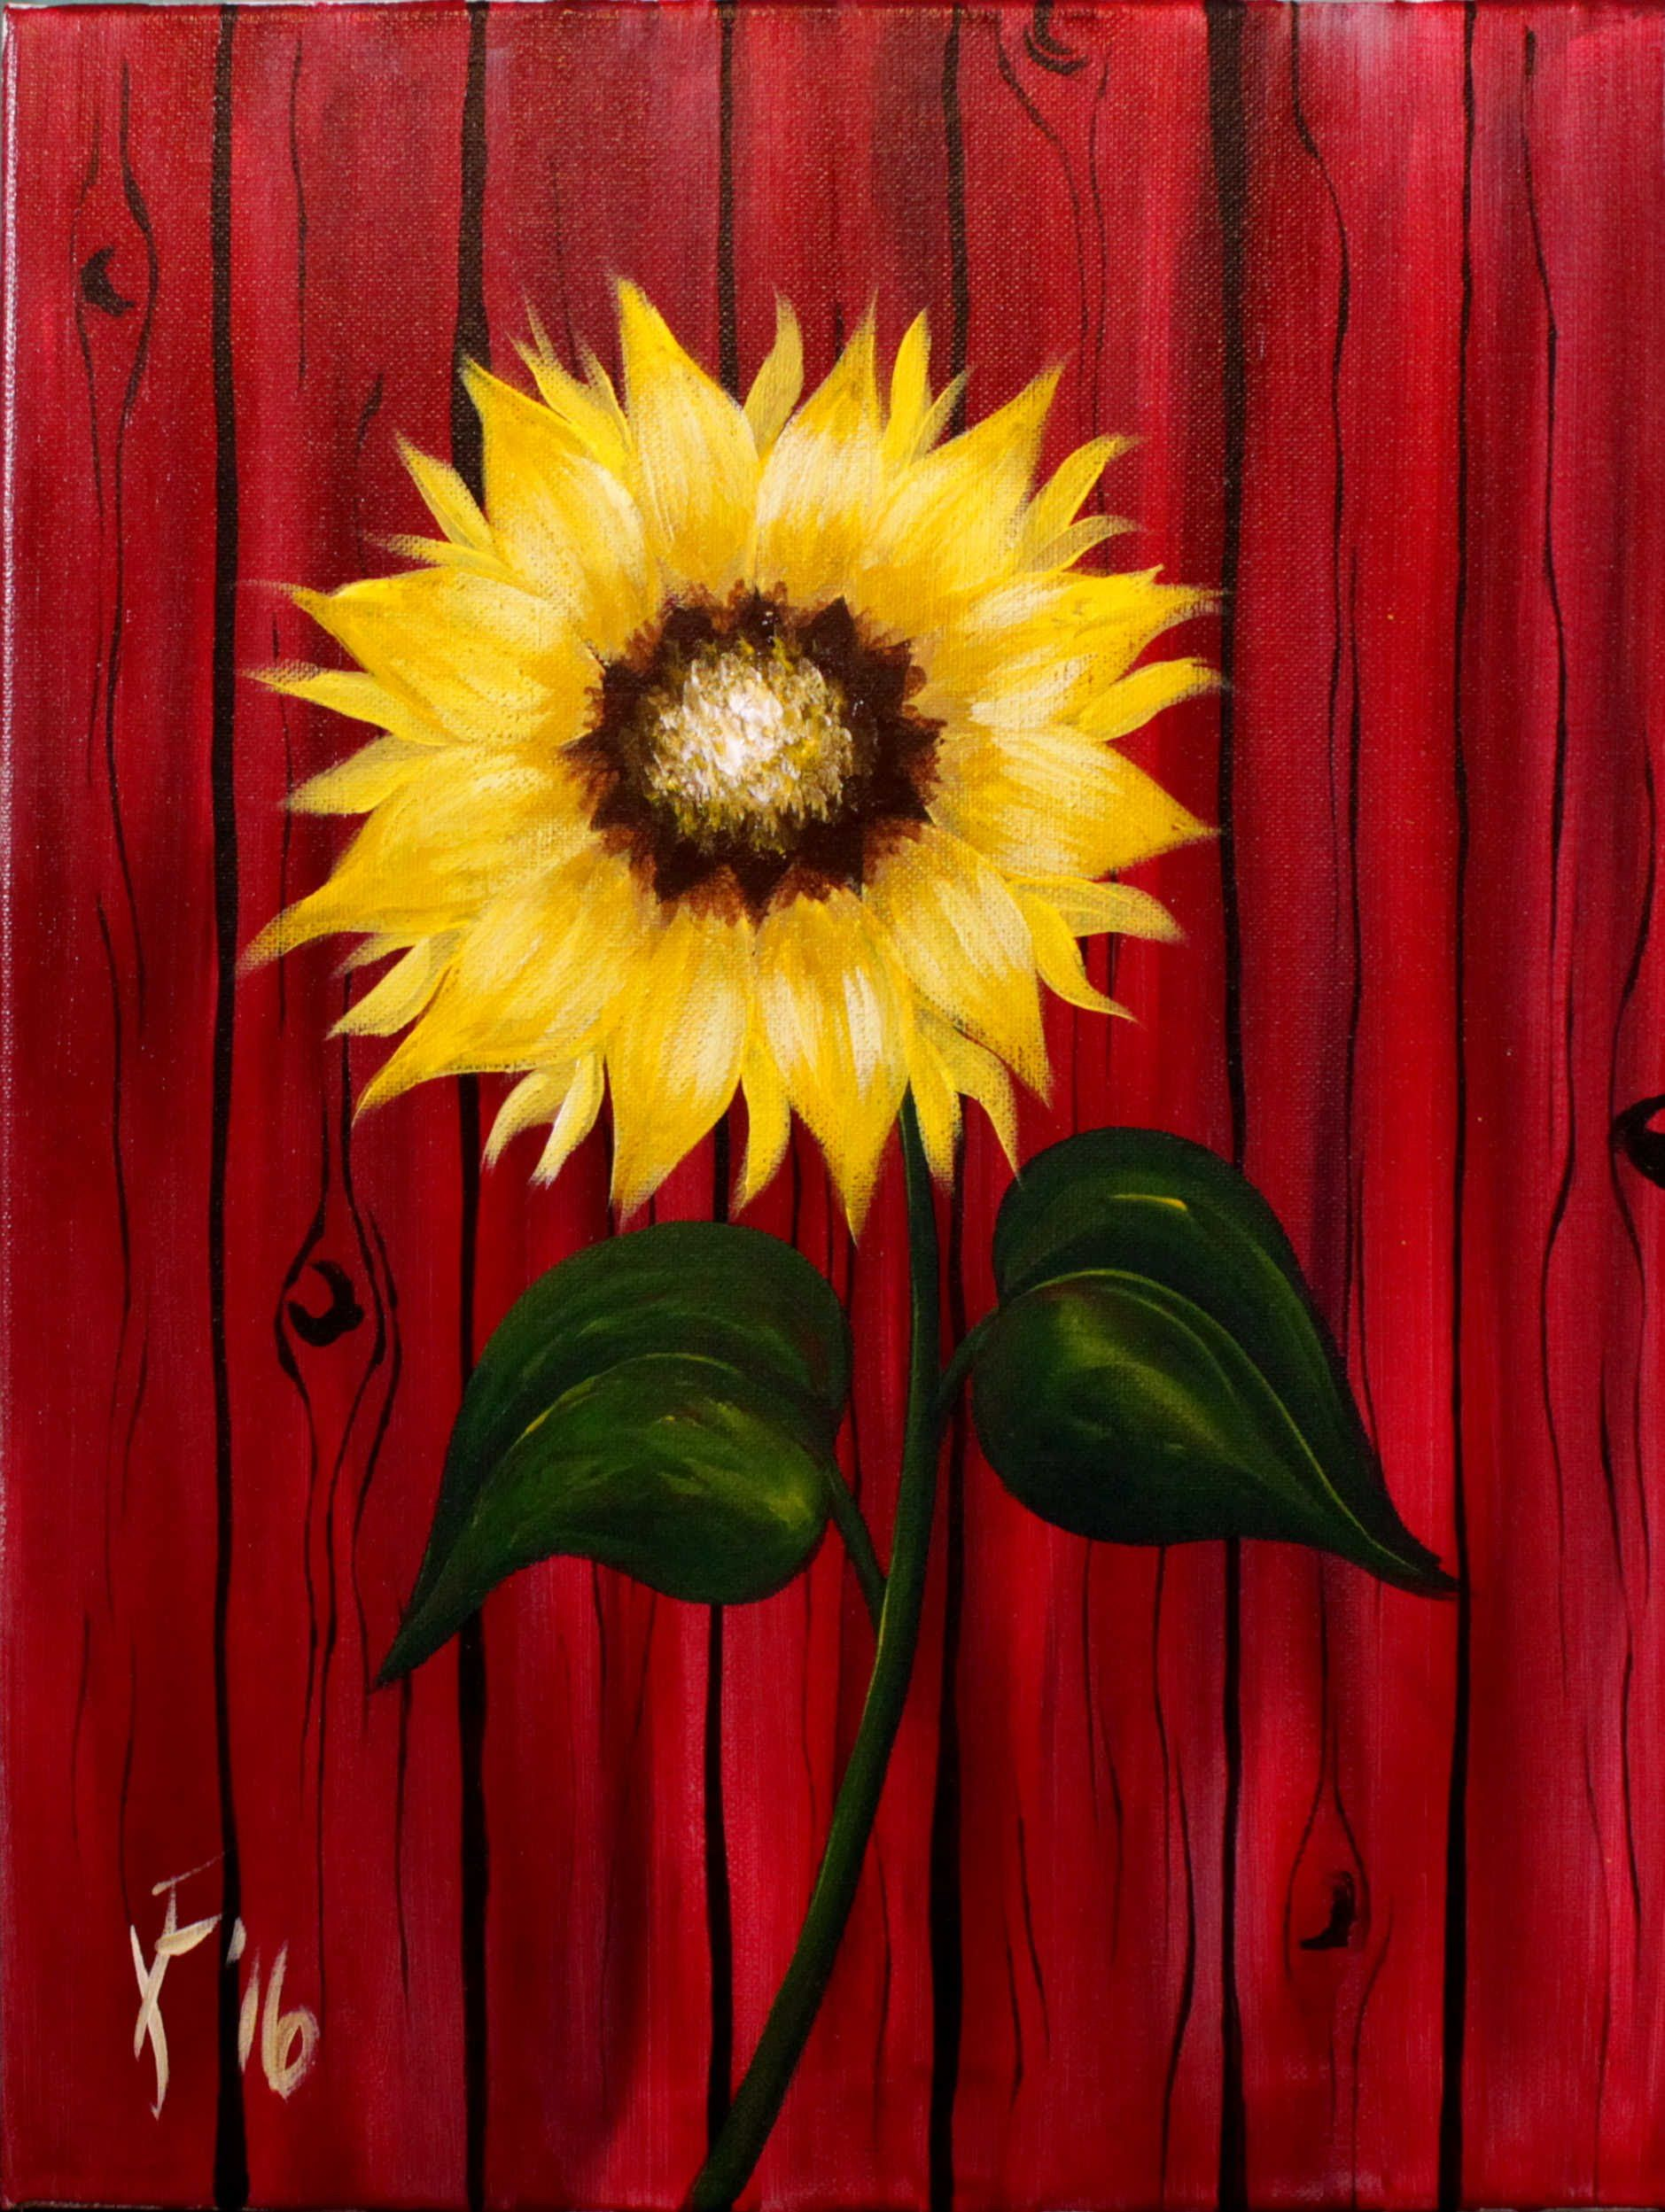 Autum Sunflower Step By Acrylic Painting On Canvas For Beginners